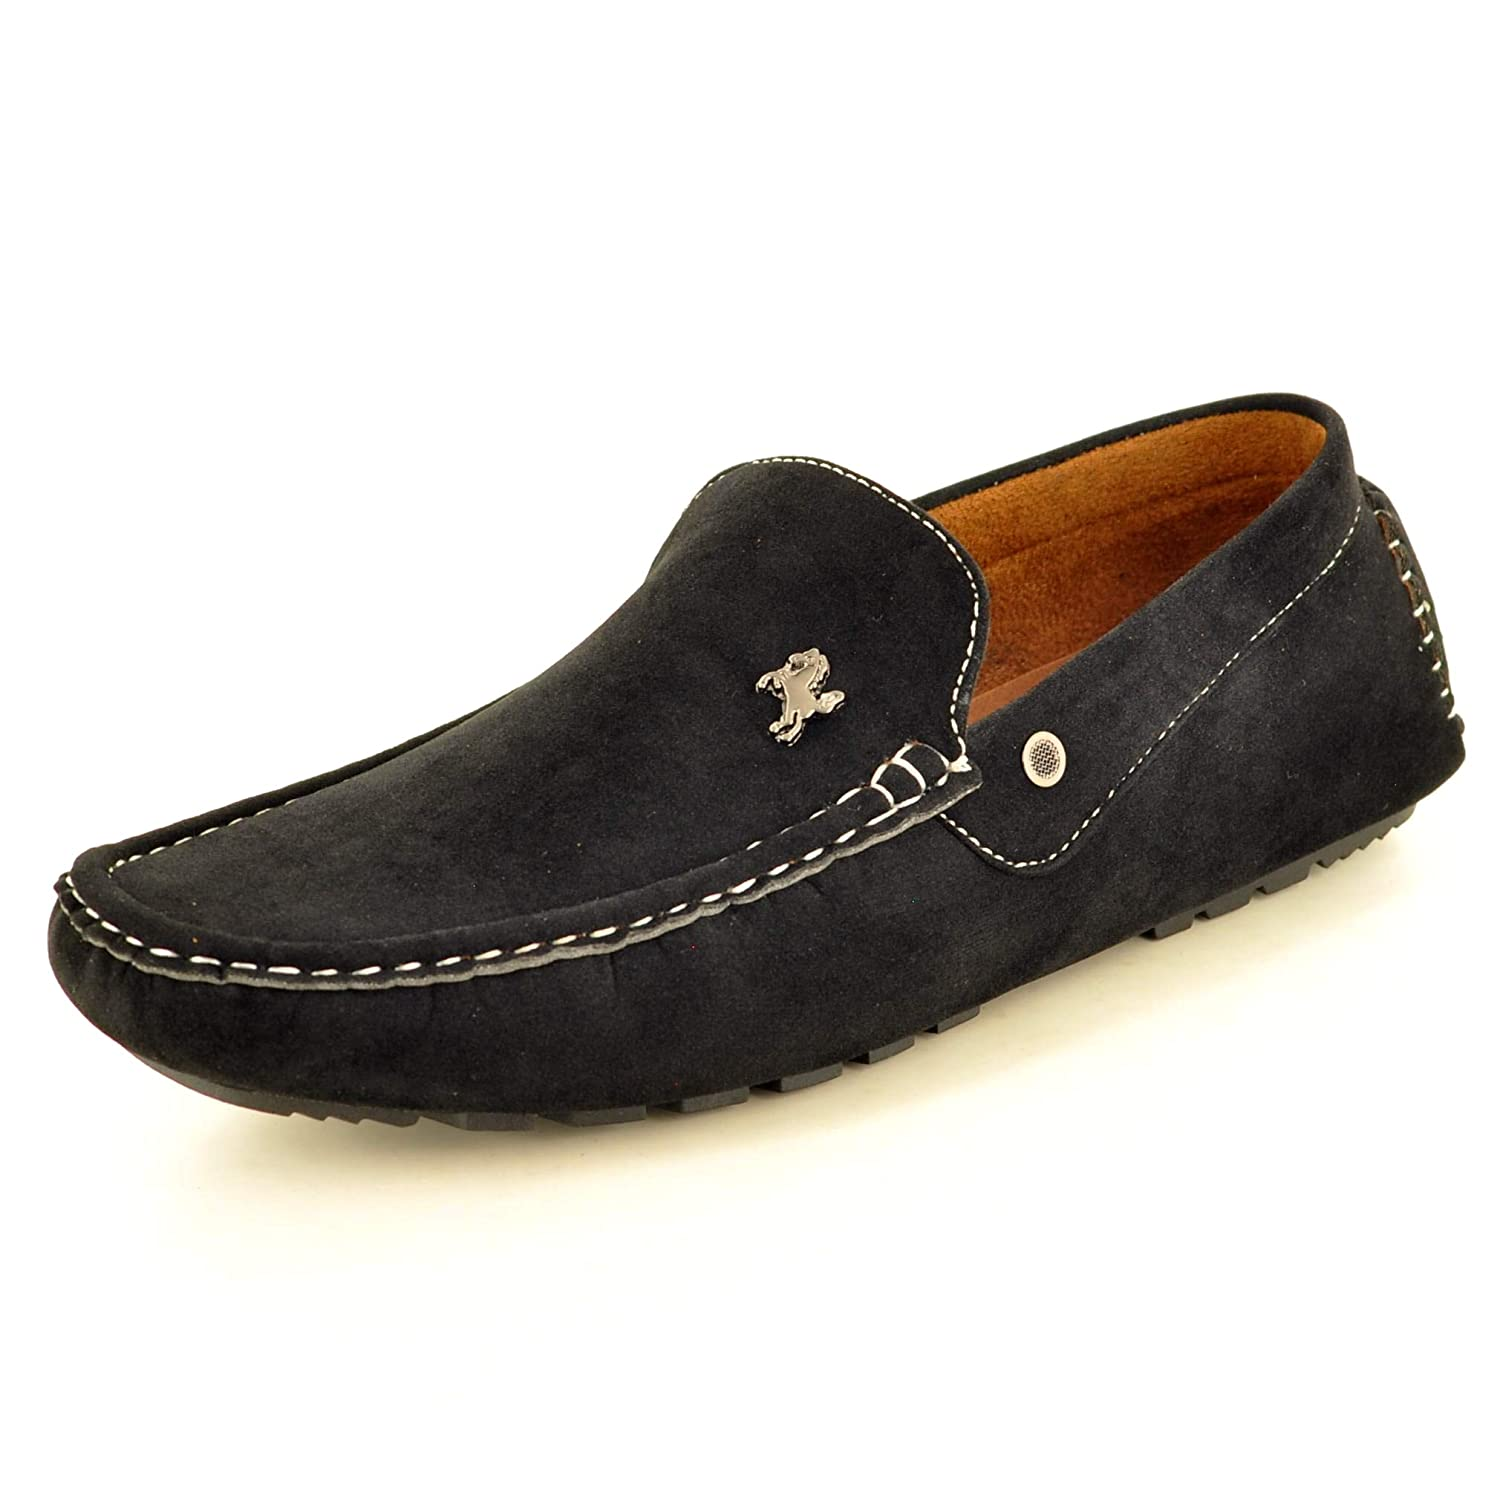 My Pair - Zapato para Hombre de Color Negro de Talla UK 11 / EU 45